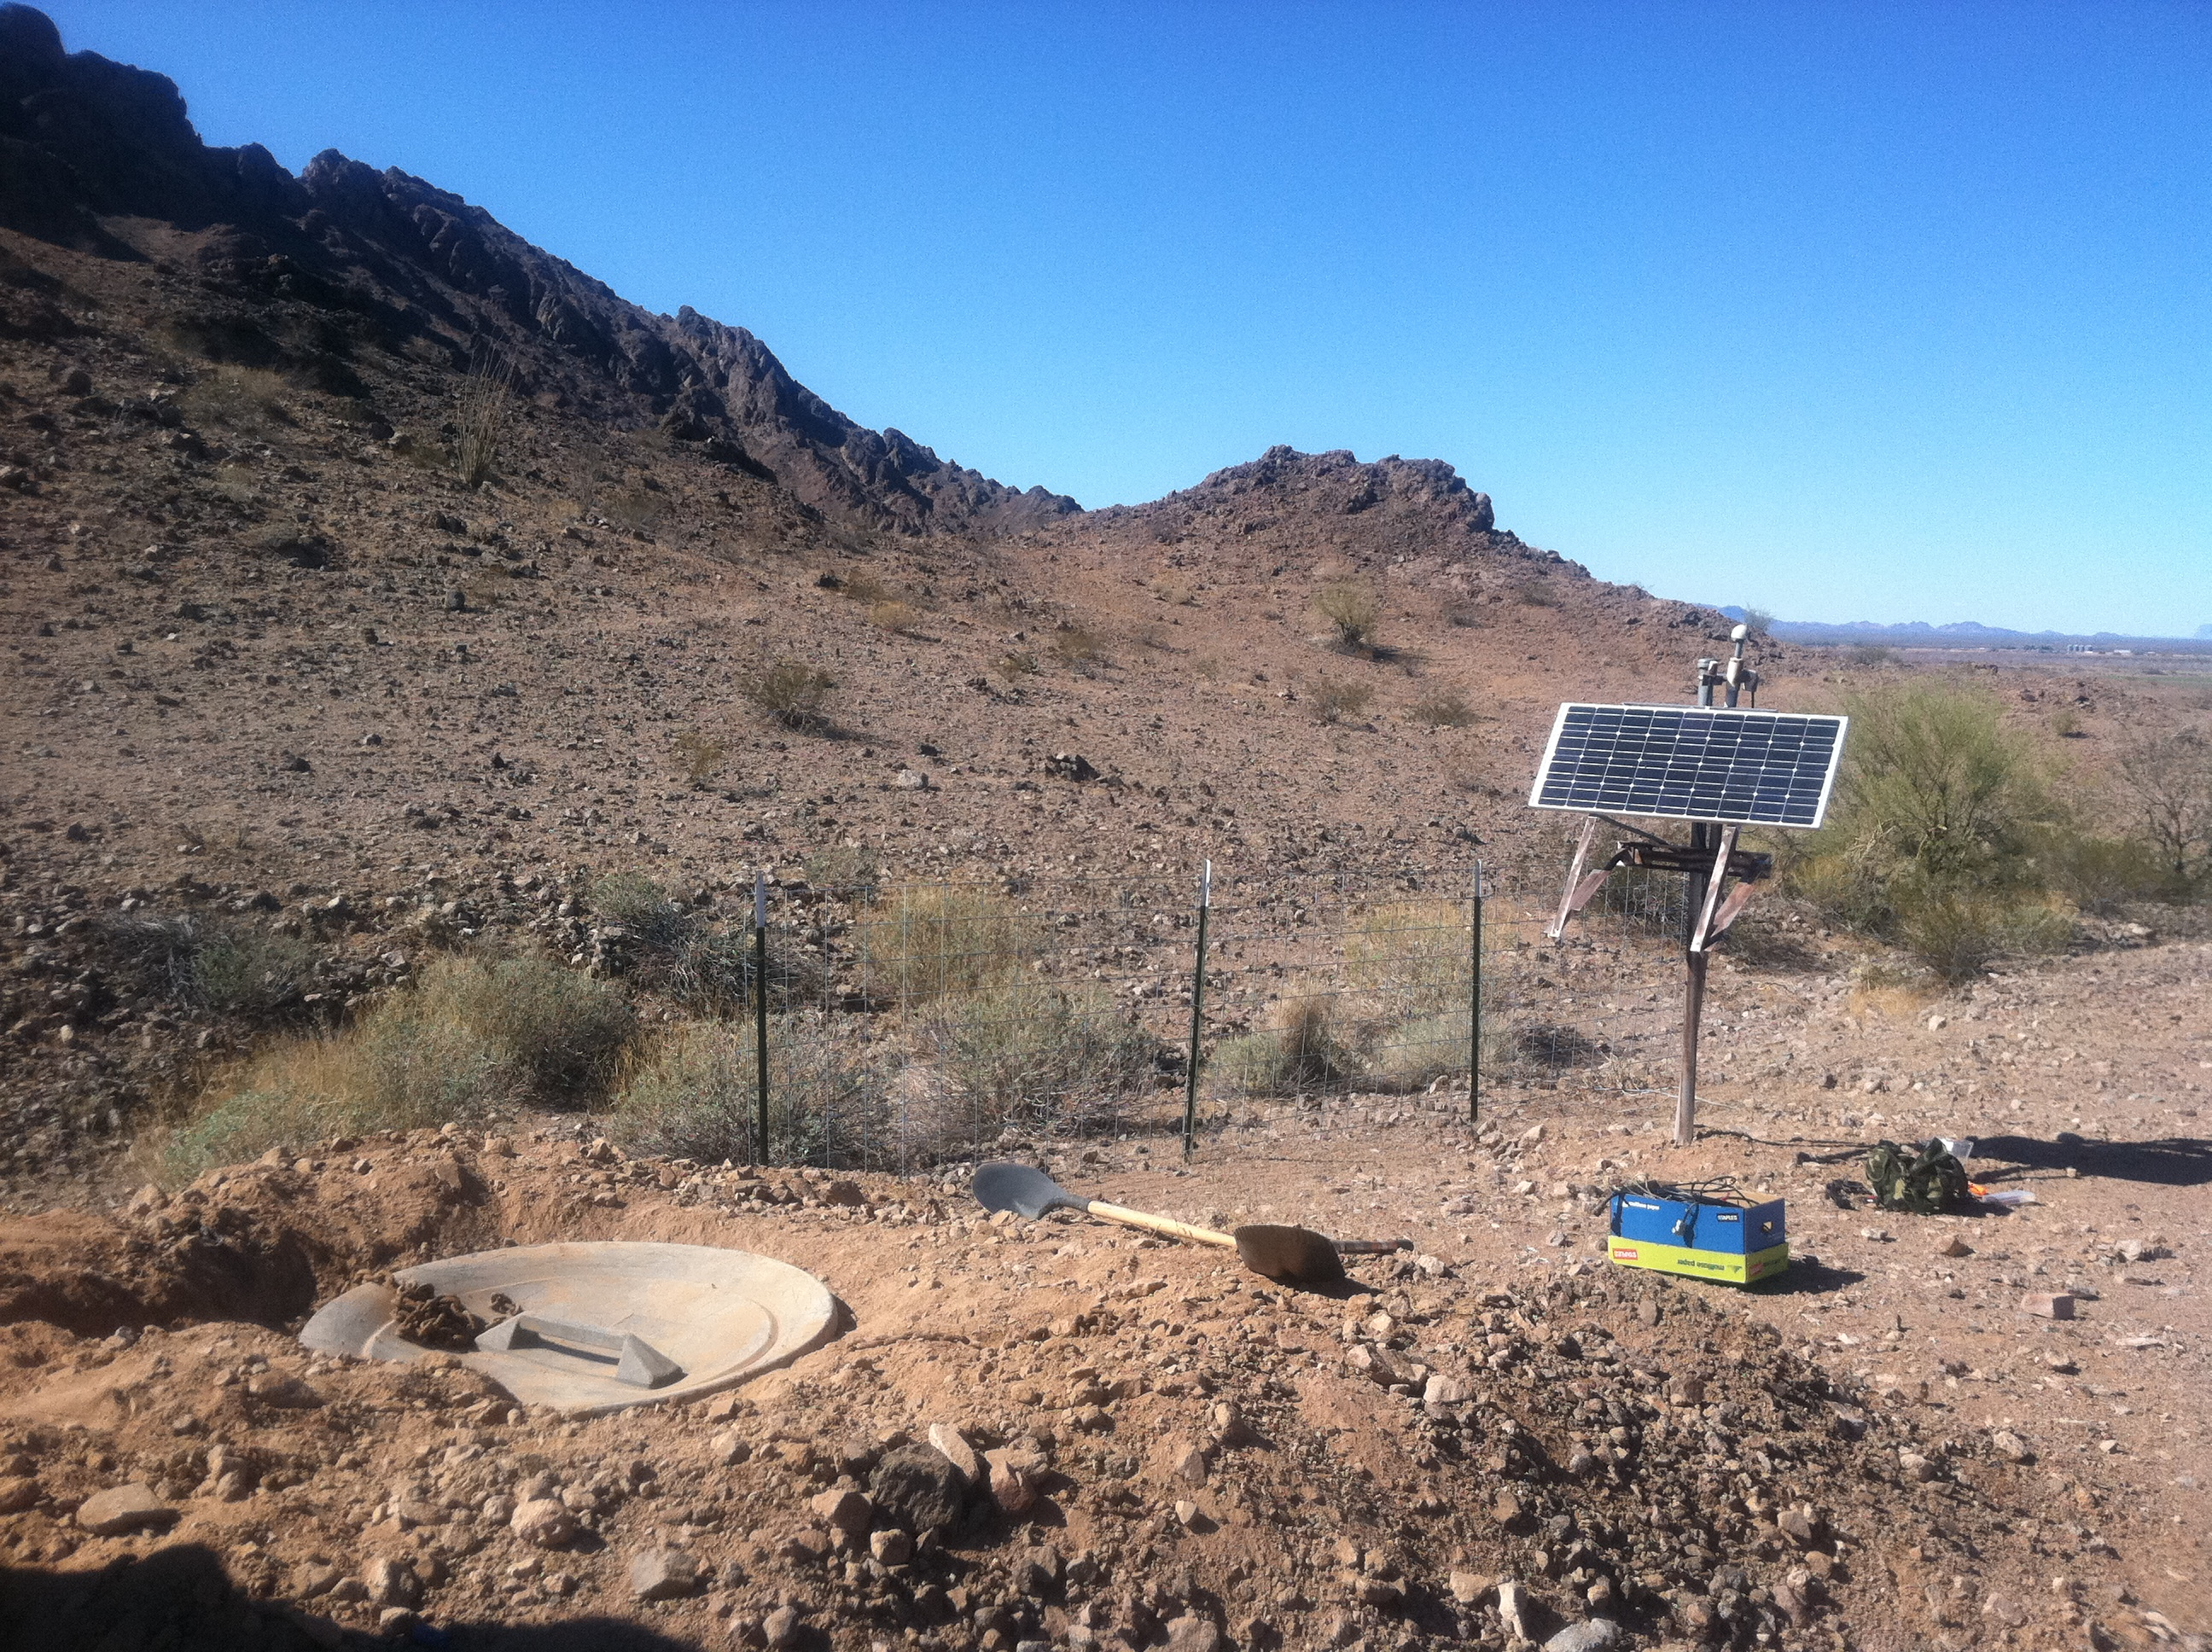 AZGS broadband seismic station near Yuma, Arizona